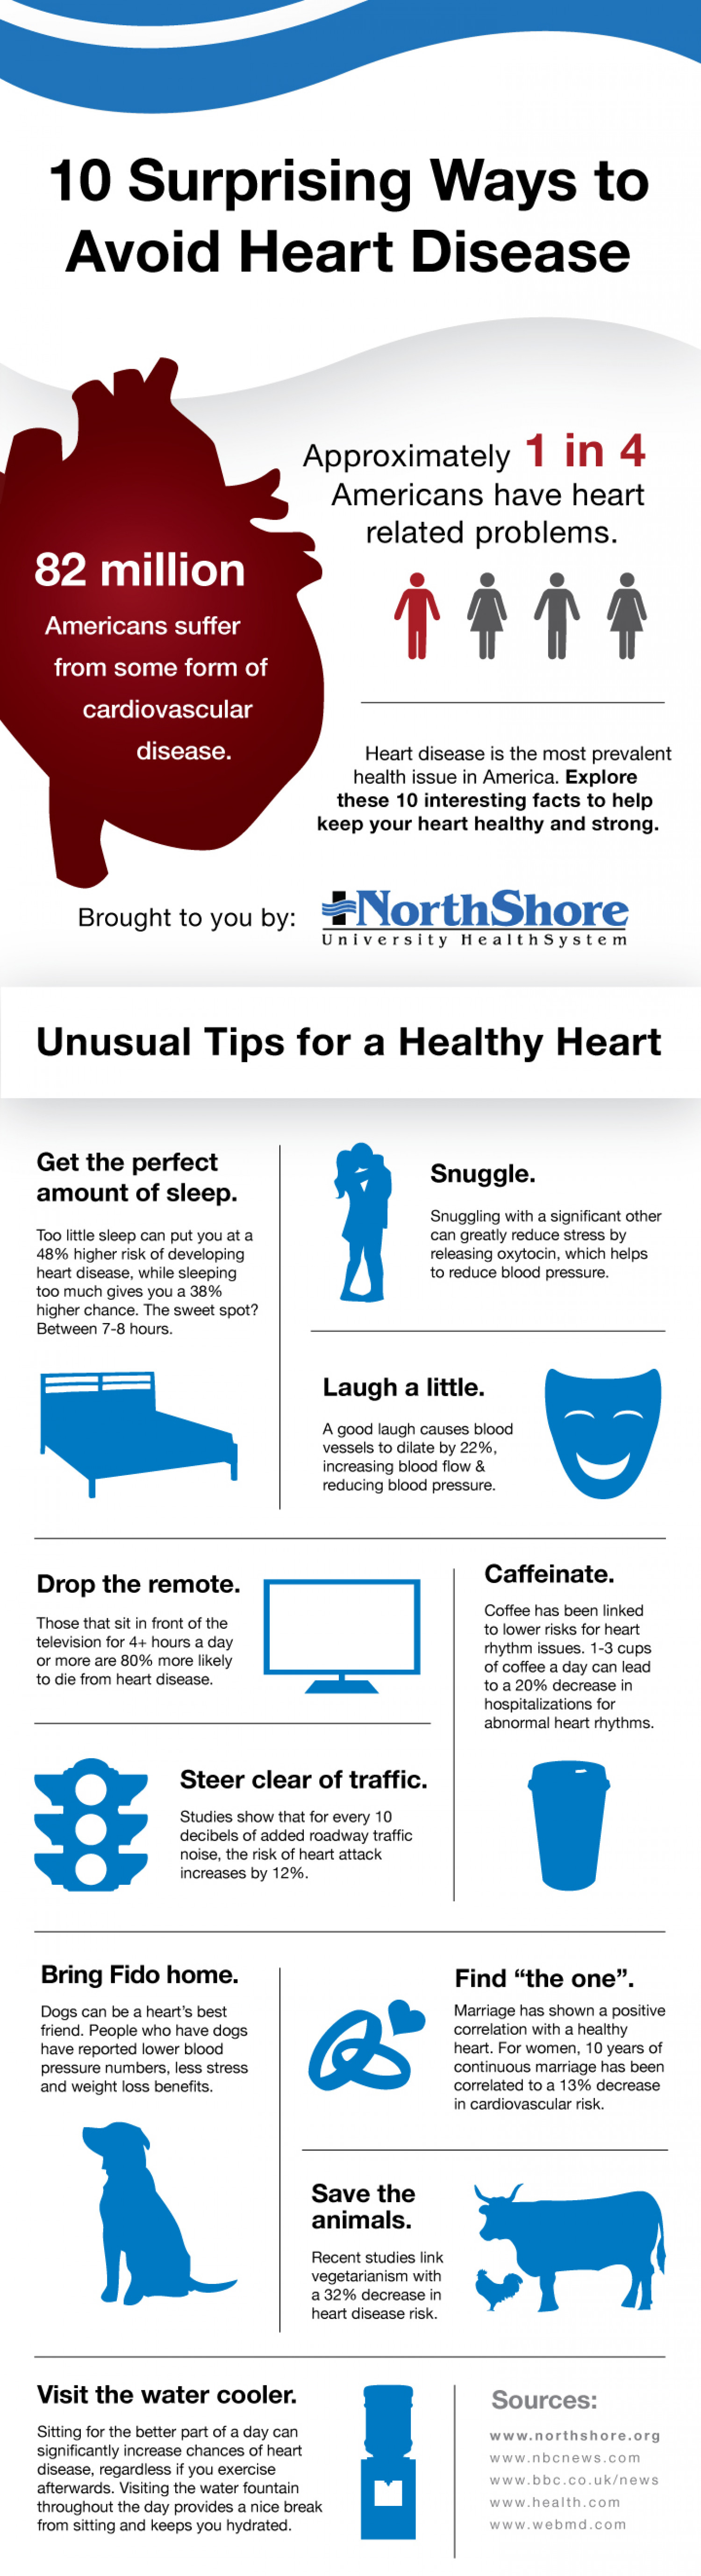 Prevent Heart Disease With These Surprising Heart Healthy Tips Infographic